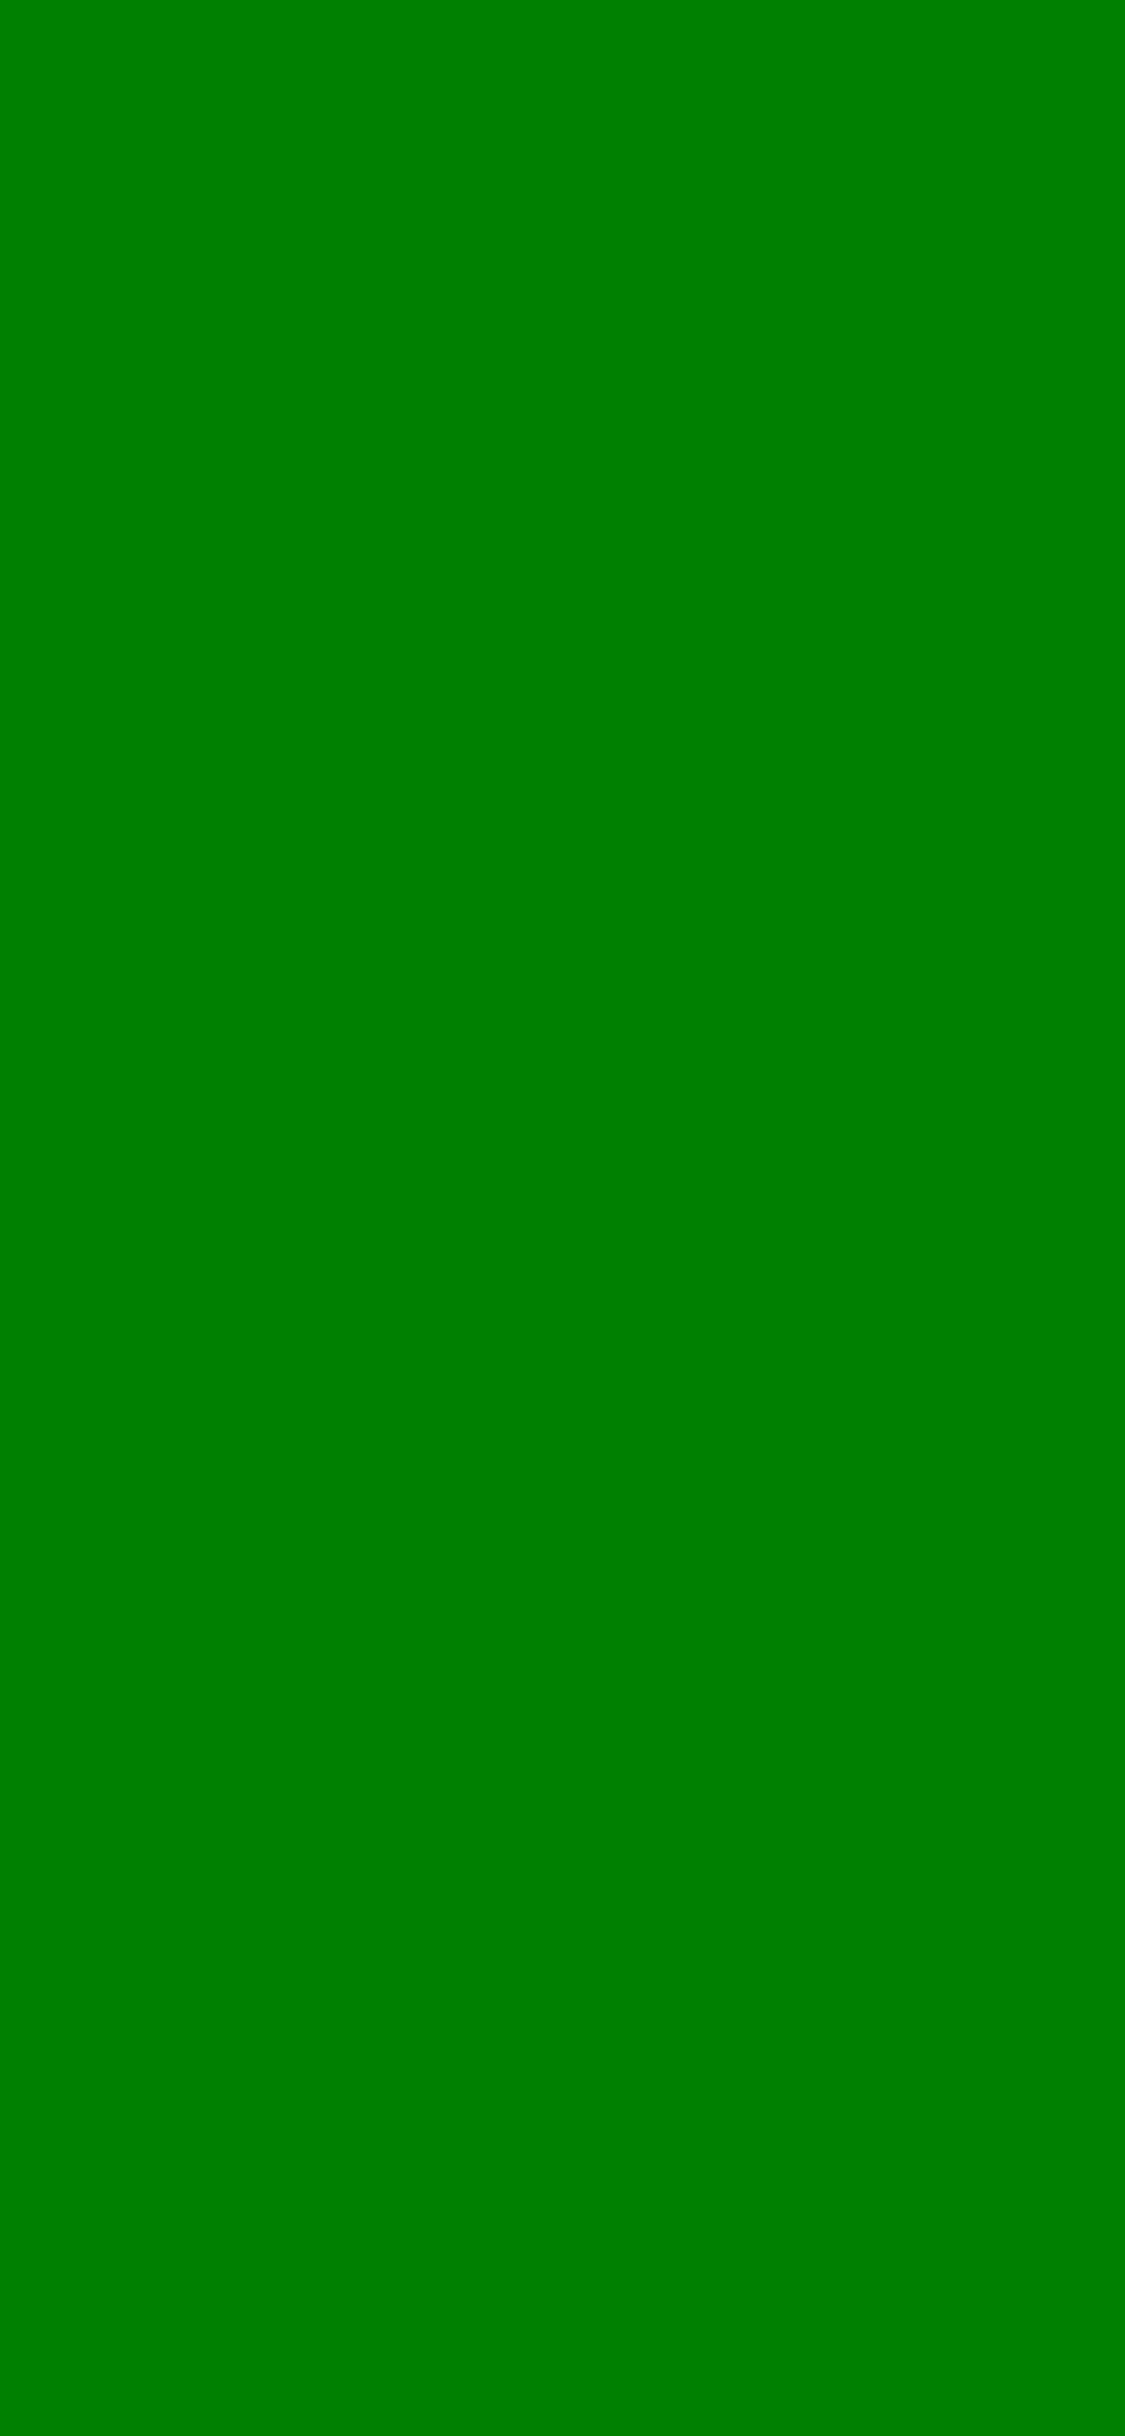 1125x2436 Office Green Solid Color Background